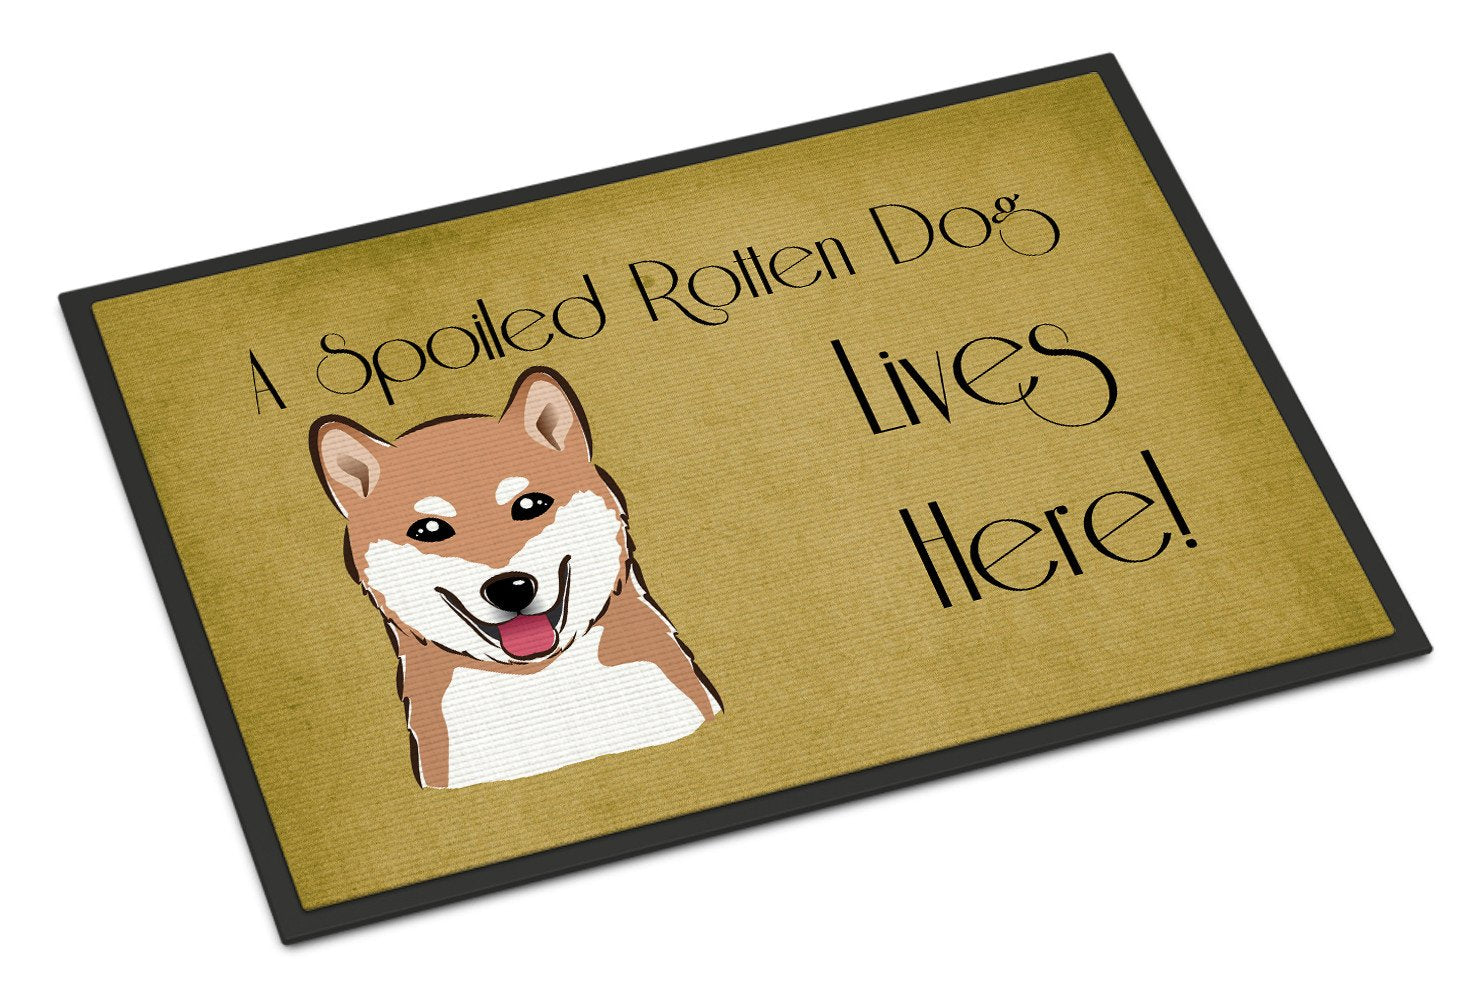 Shiba Inu Spoiled Dog Lives Here Indoor or Outdoor Mat 18x27 BB1473MAT - the-store.com